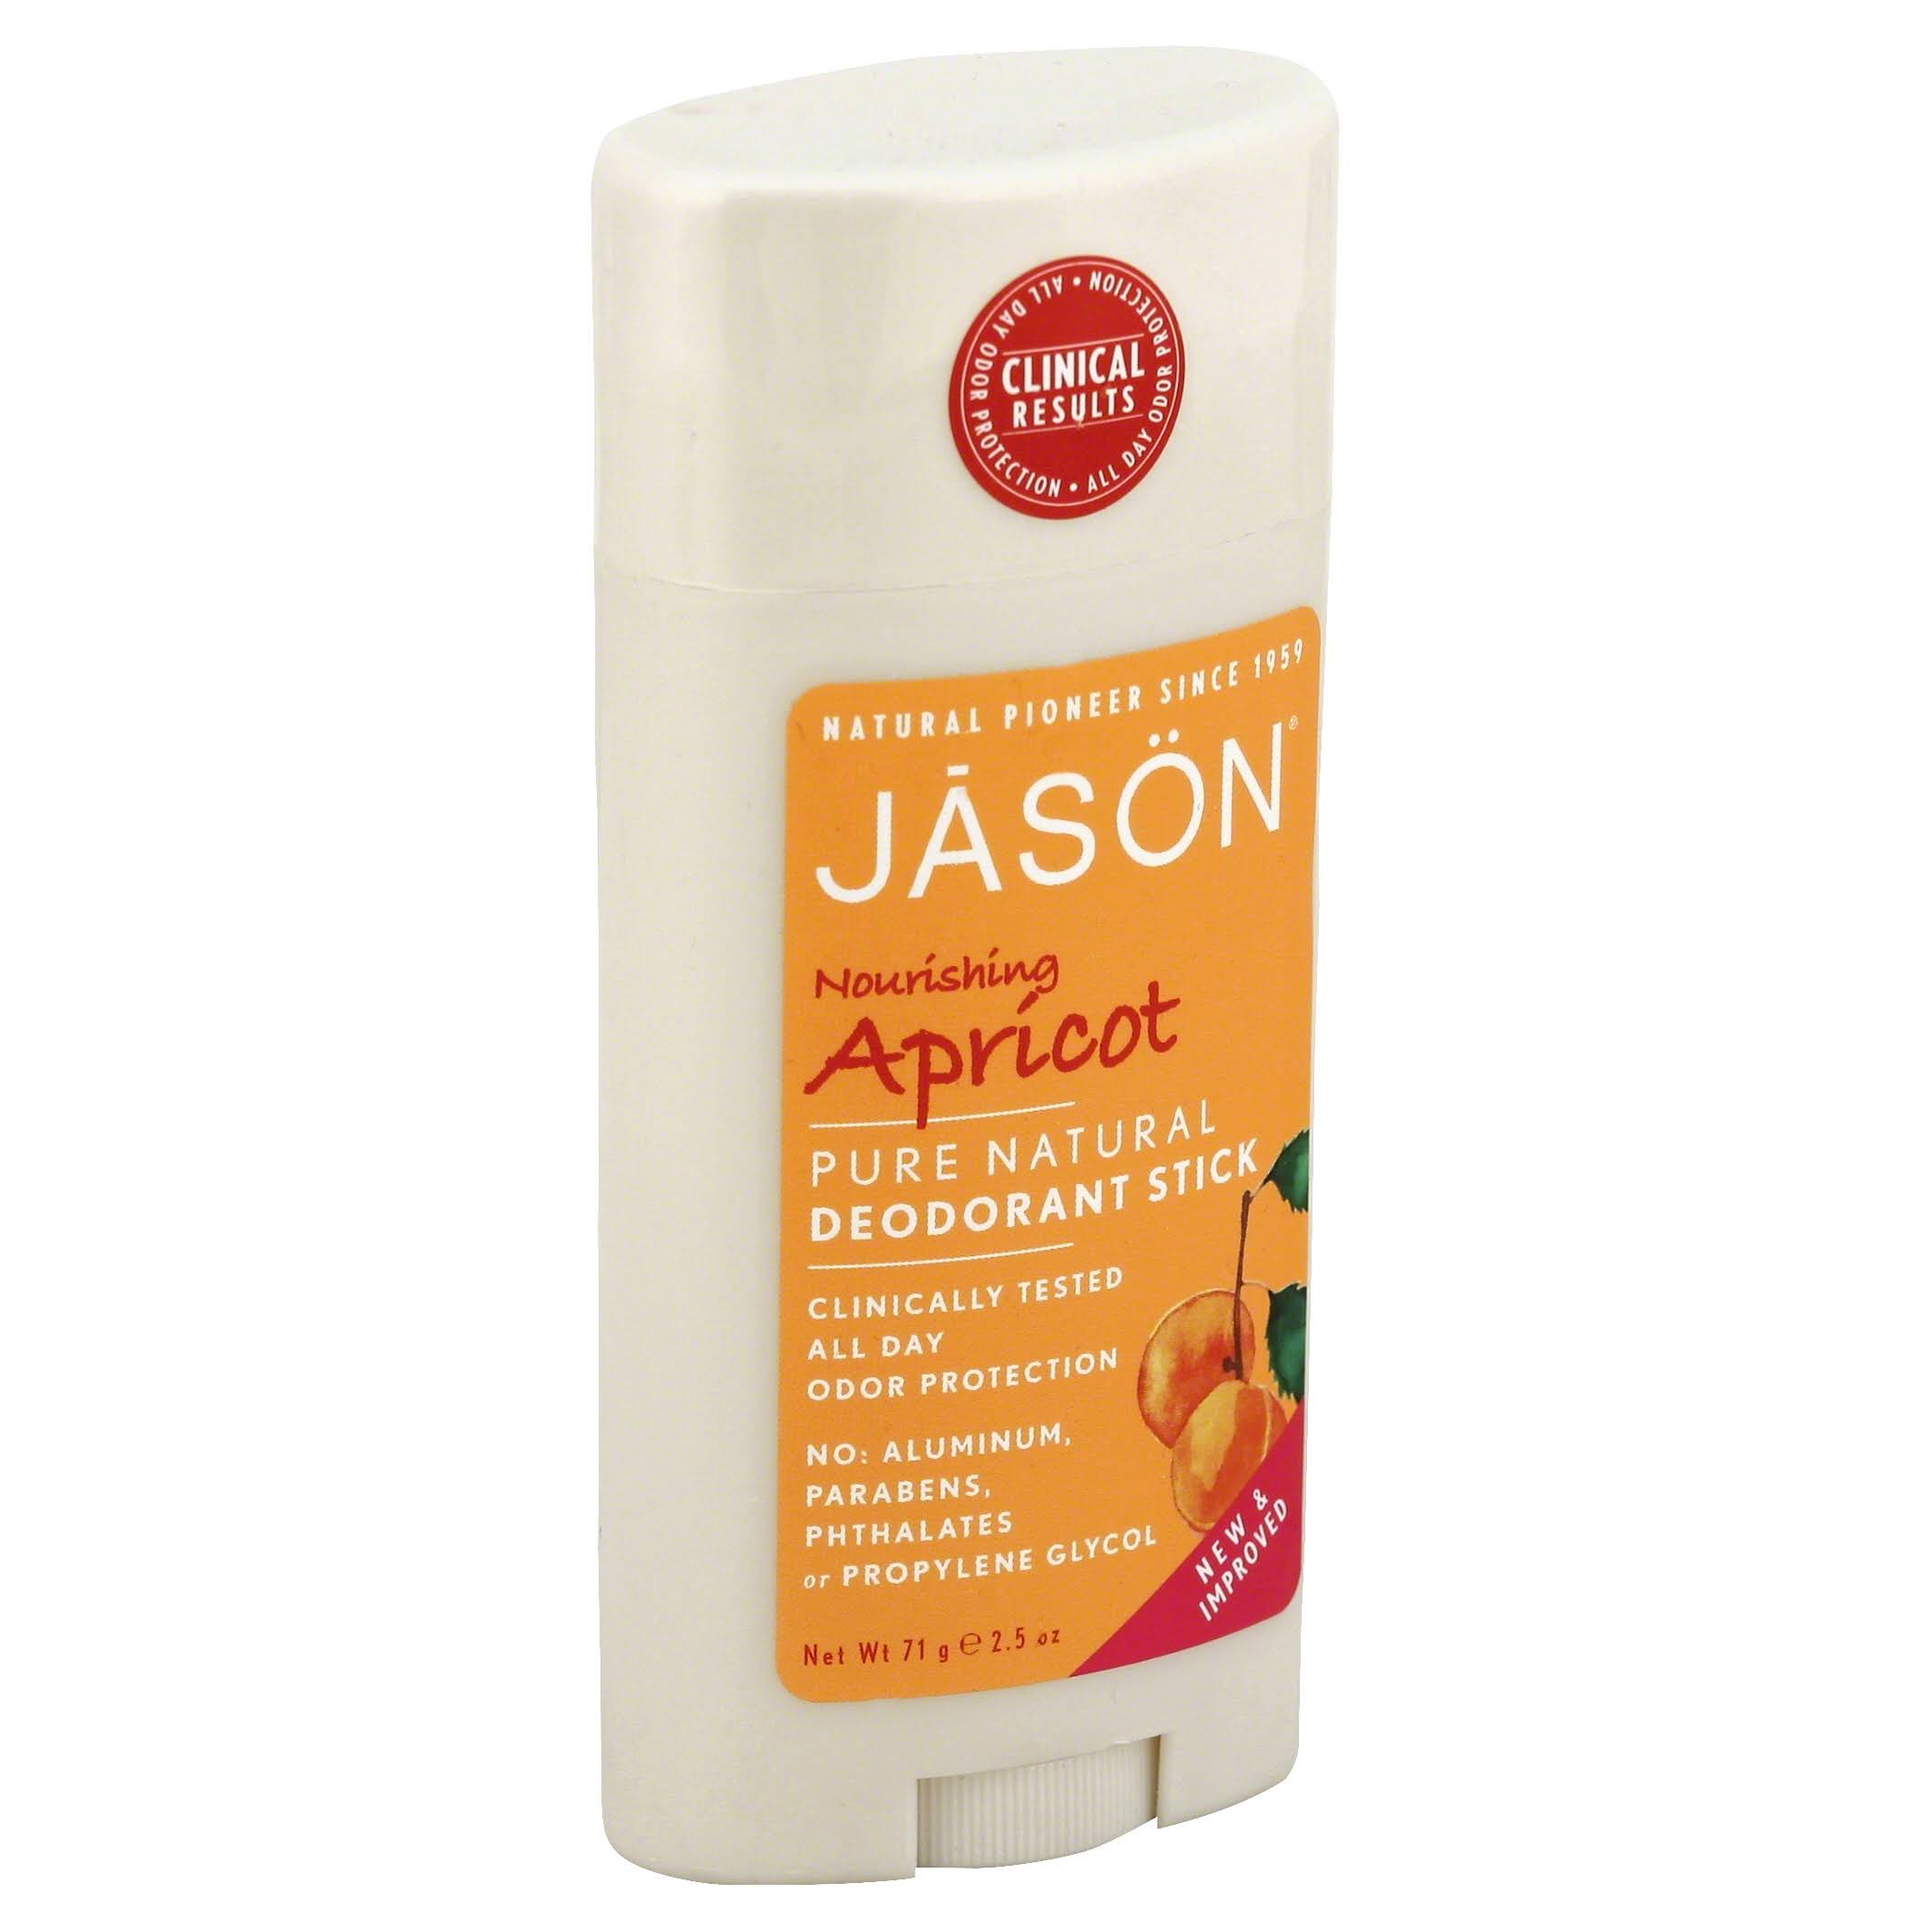 Jason Pure Natural Deodorant Stick - Apricot